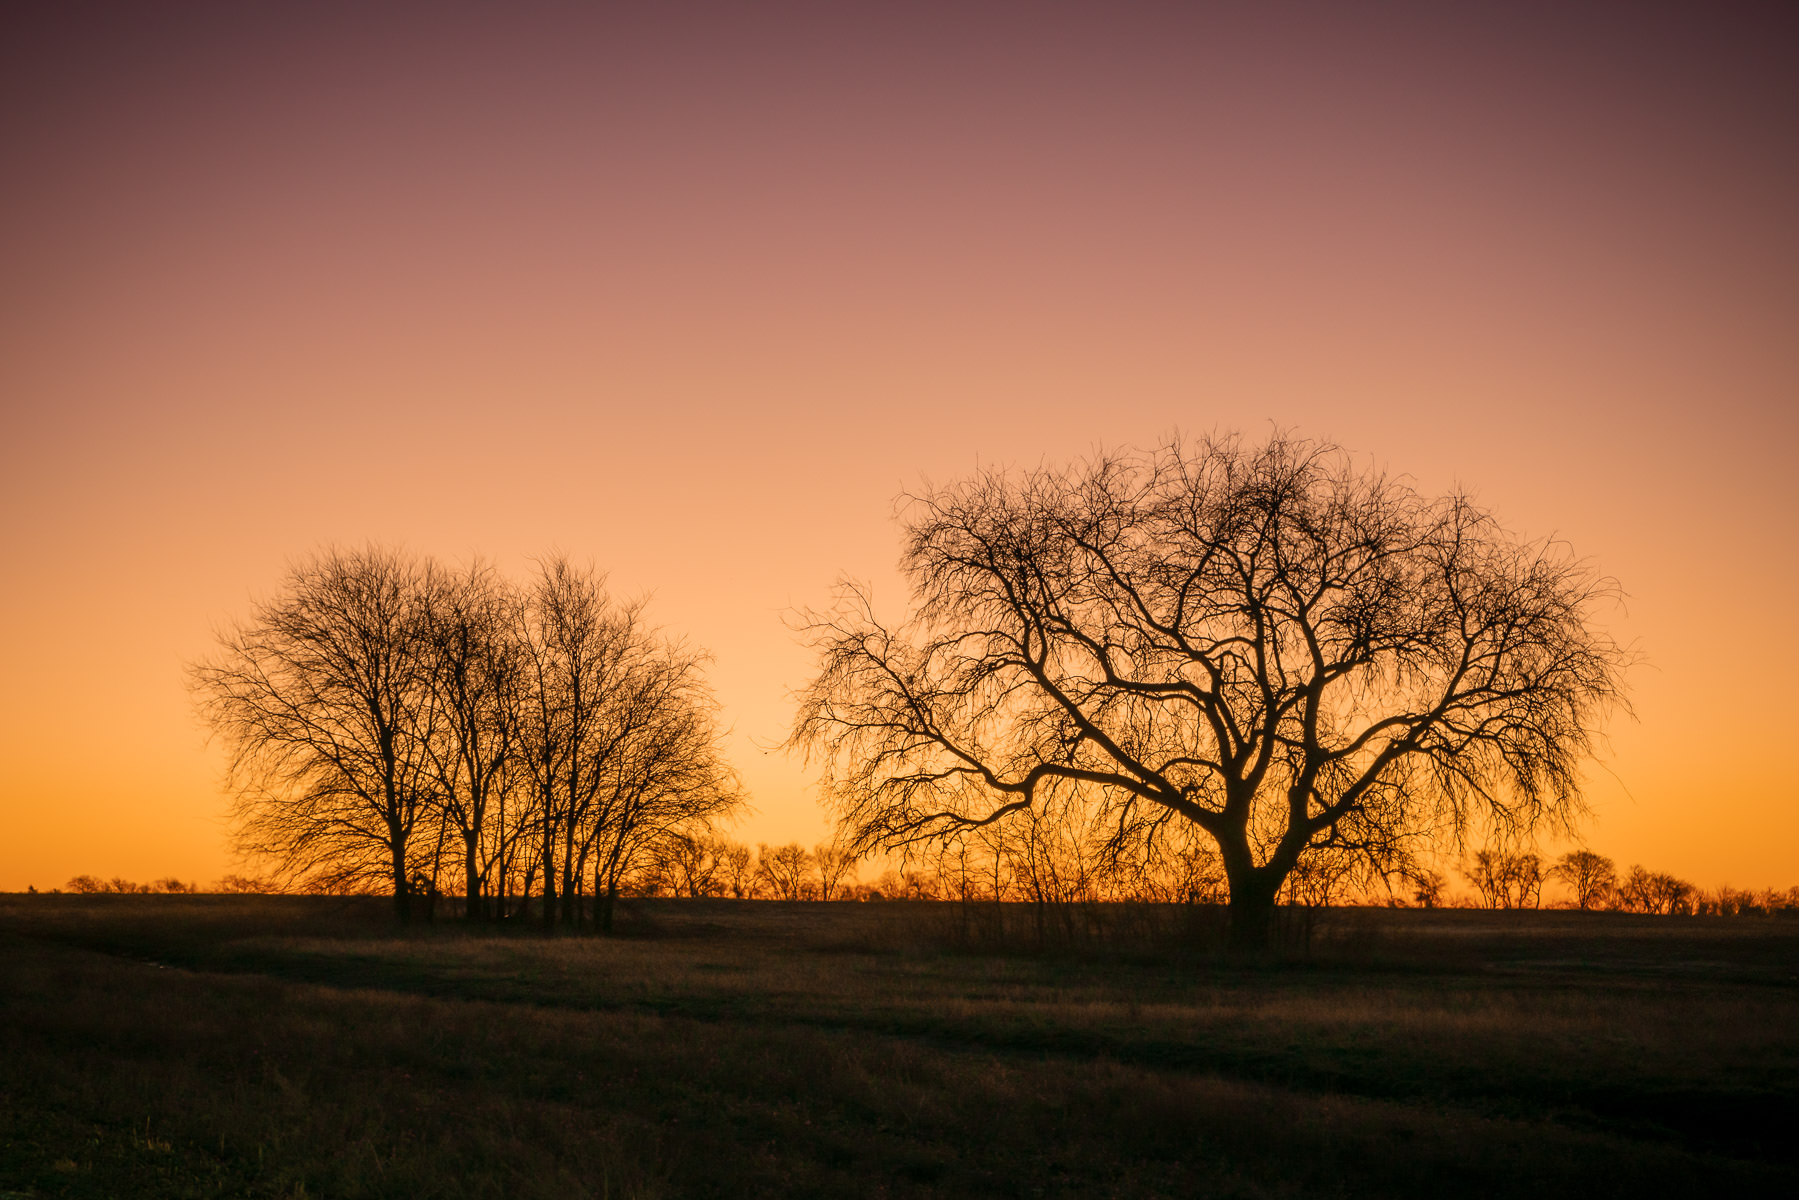 Trees near McKinney, Texas, are silhouetted by the rising sun.